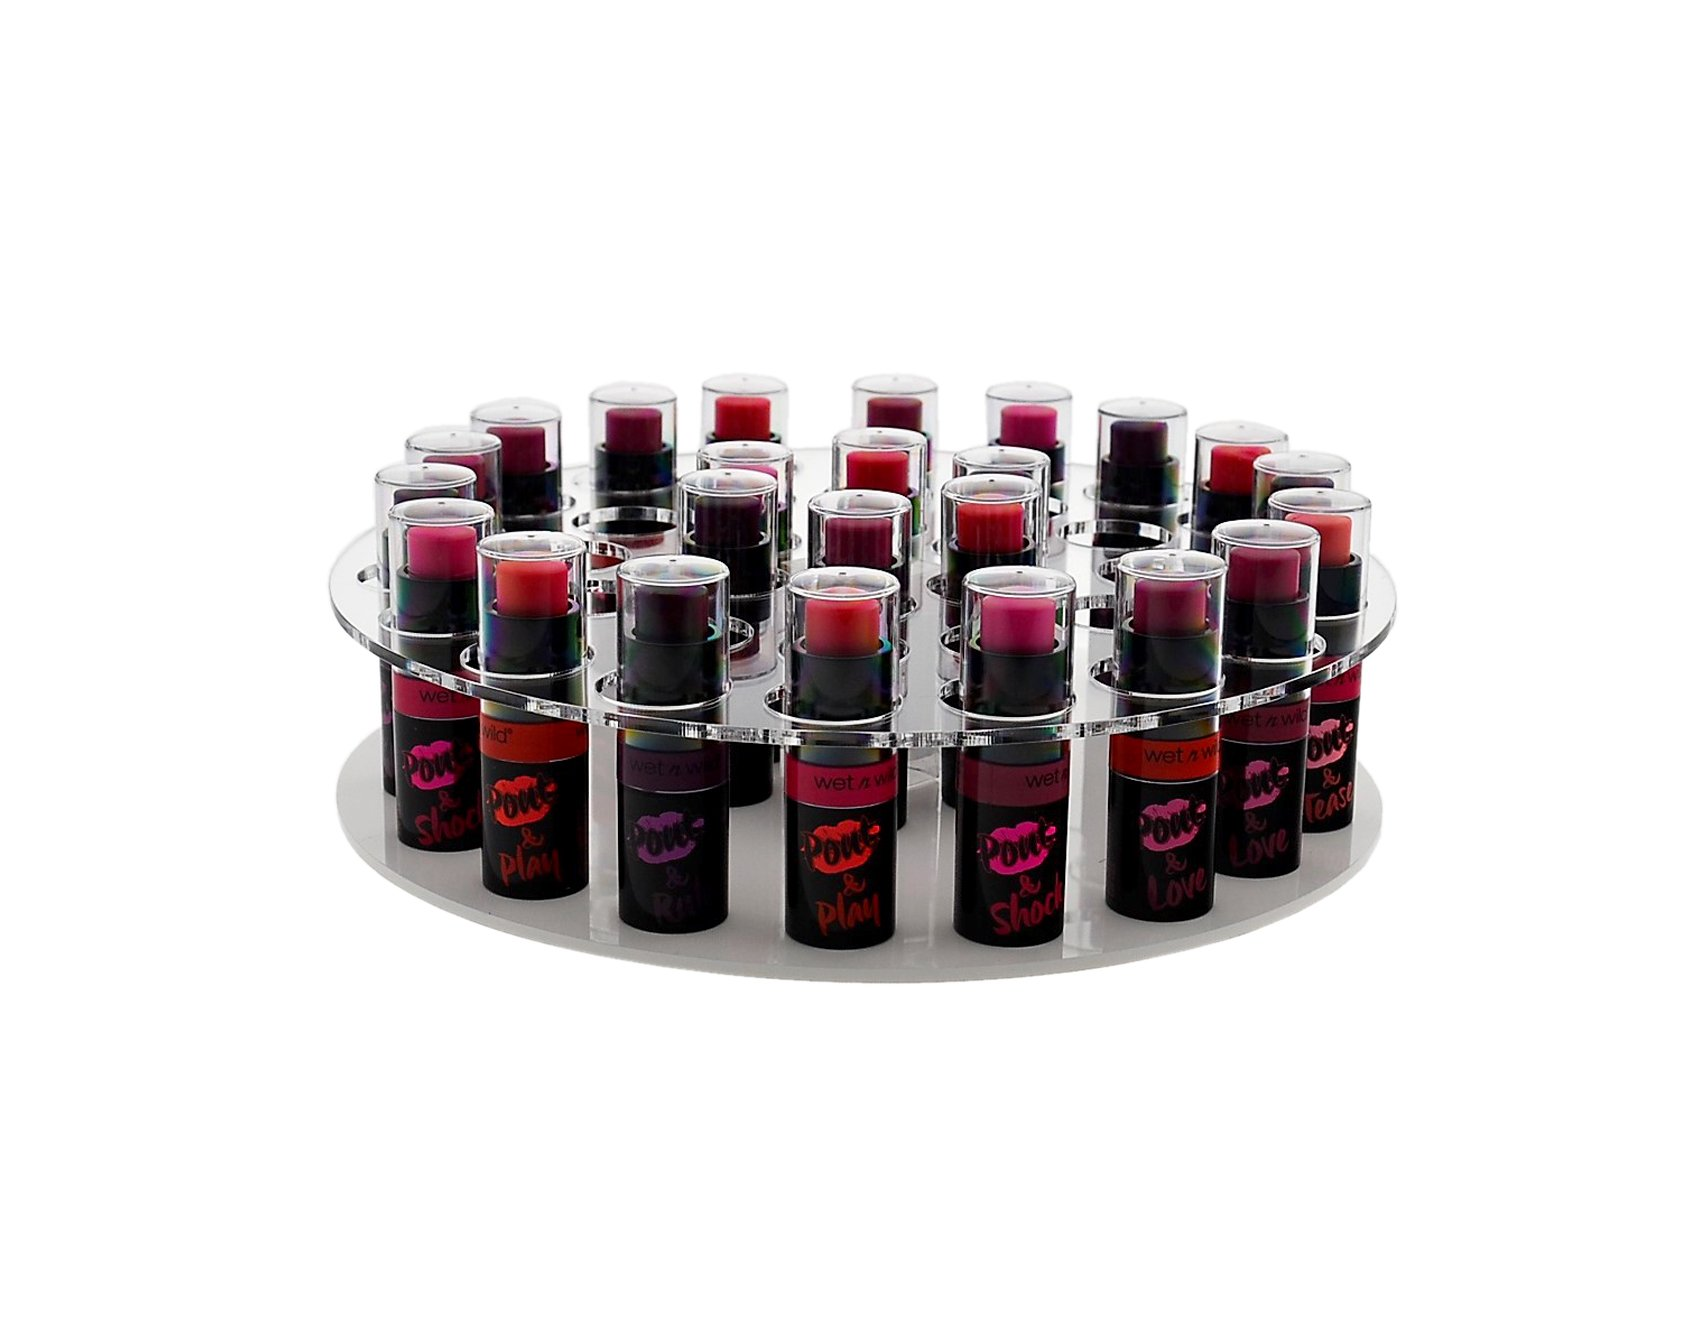 Marketing Holders Rotating Lipstick & Essential Oil Organizer Easy Spin Durable Display Stand Home Retail or Expos and Shows (6, Clear) by Marketing Holders (Image #3)